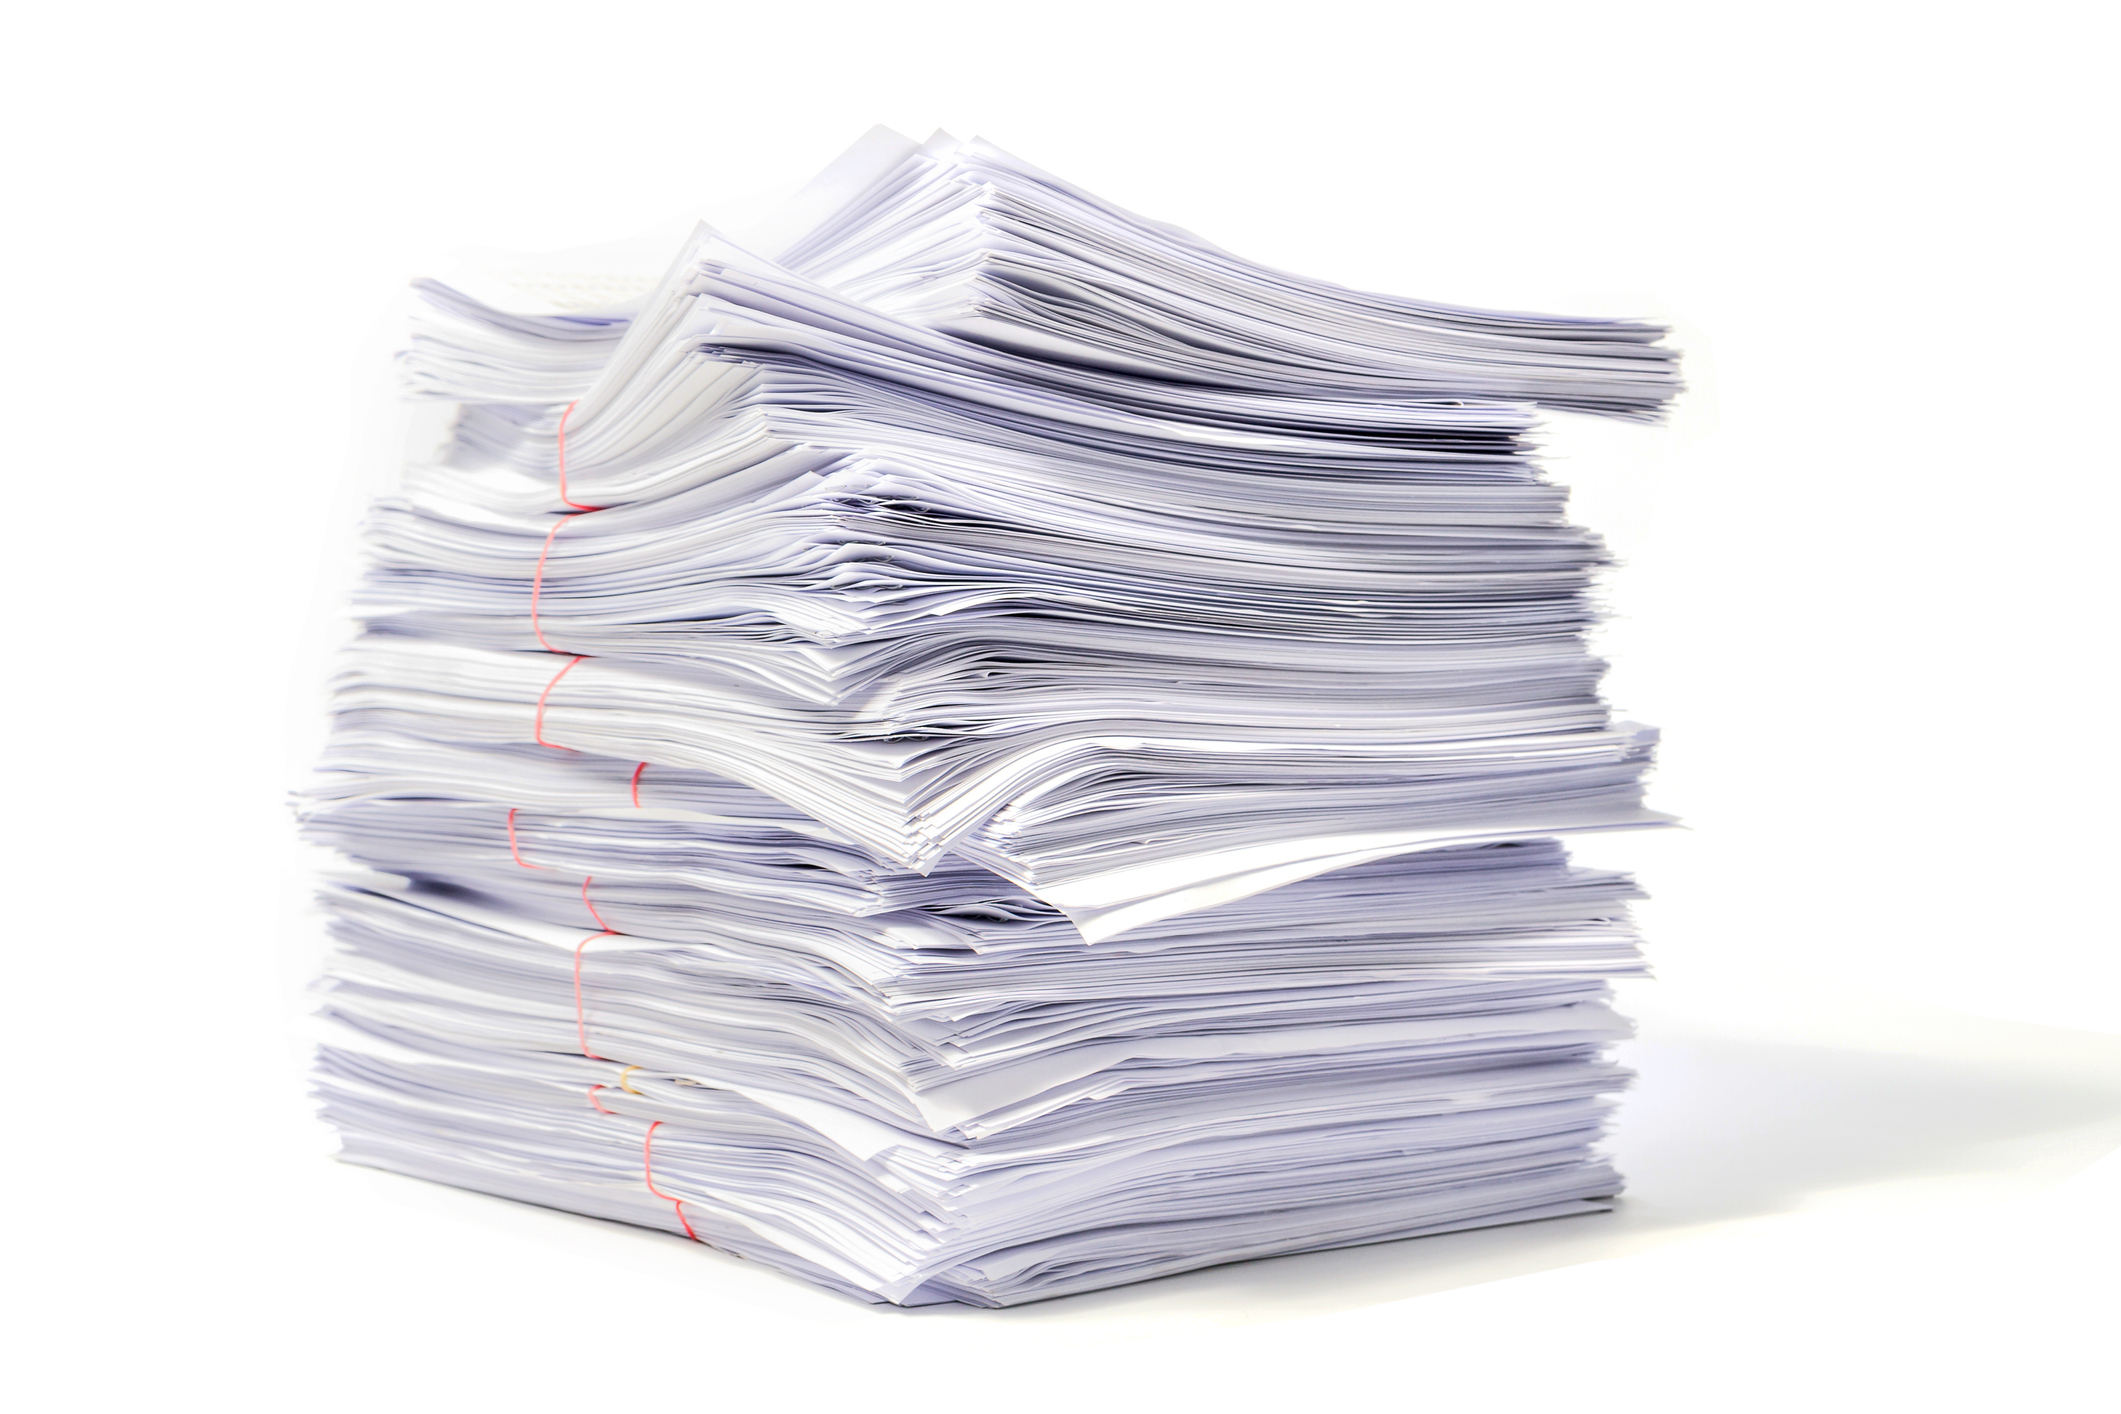 A big pile of papers